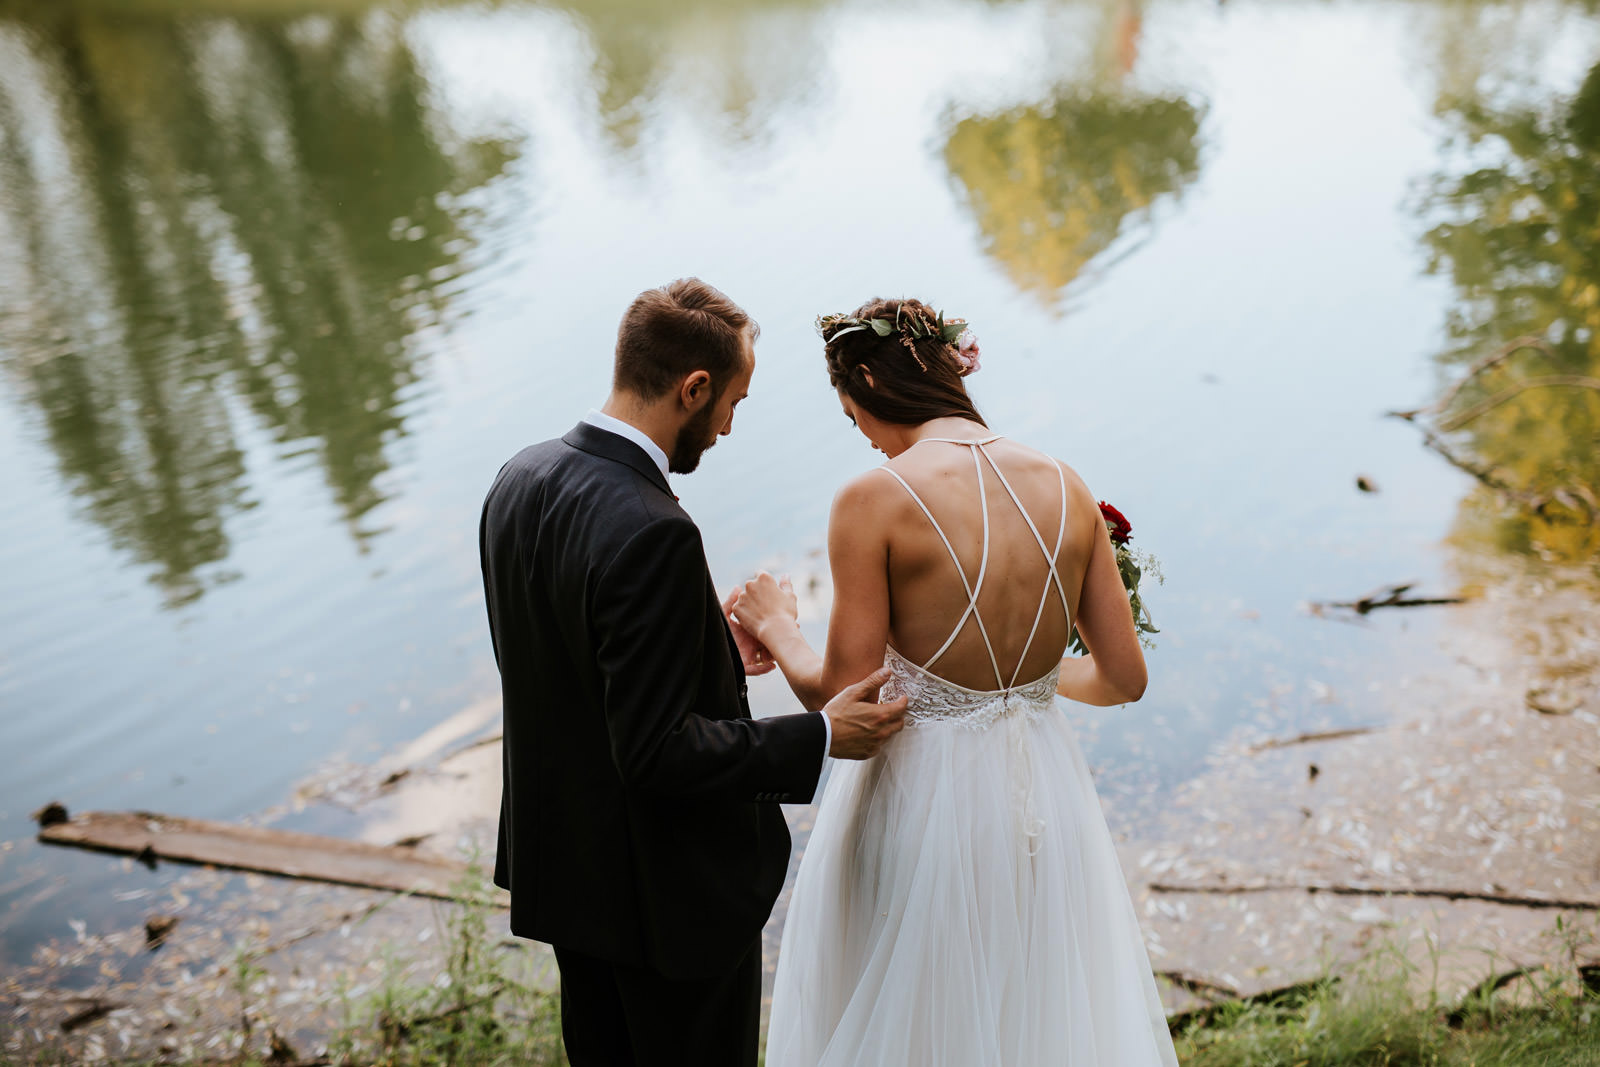 Outdoor destination wedding photographer